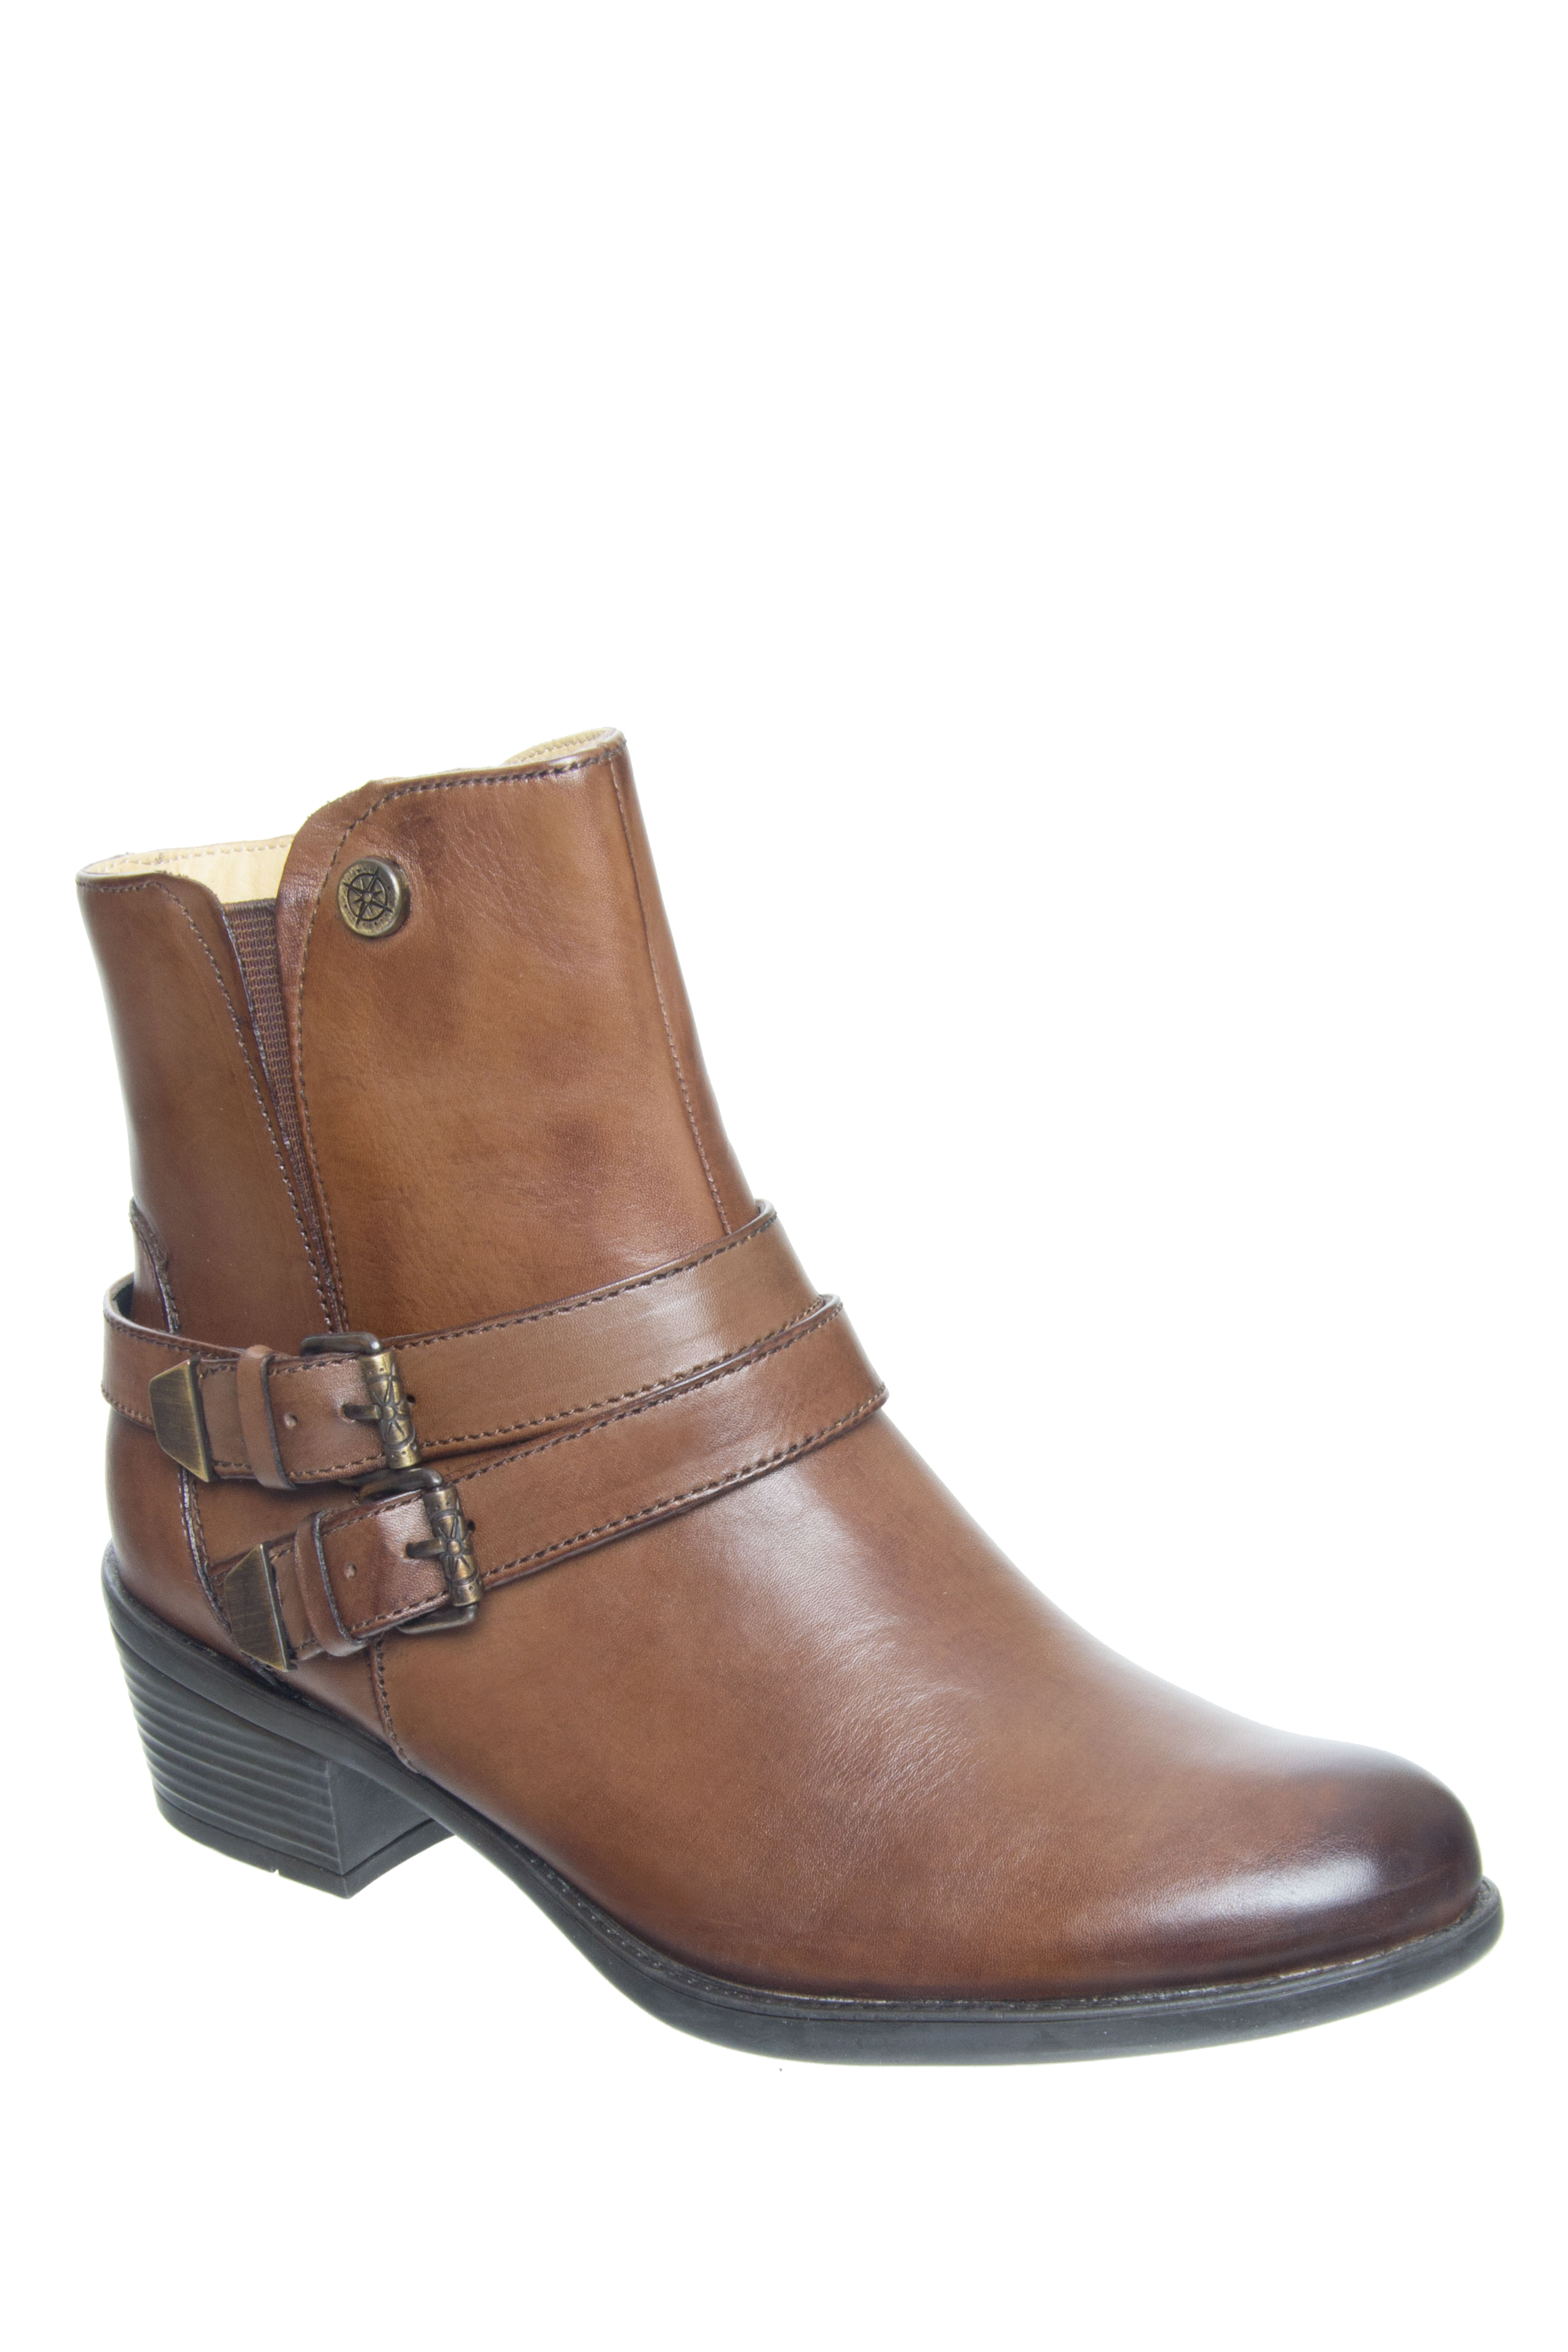 Bussola Avy Mid Heel Boots - Luggage